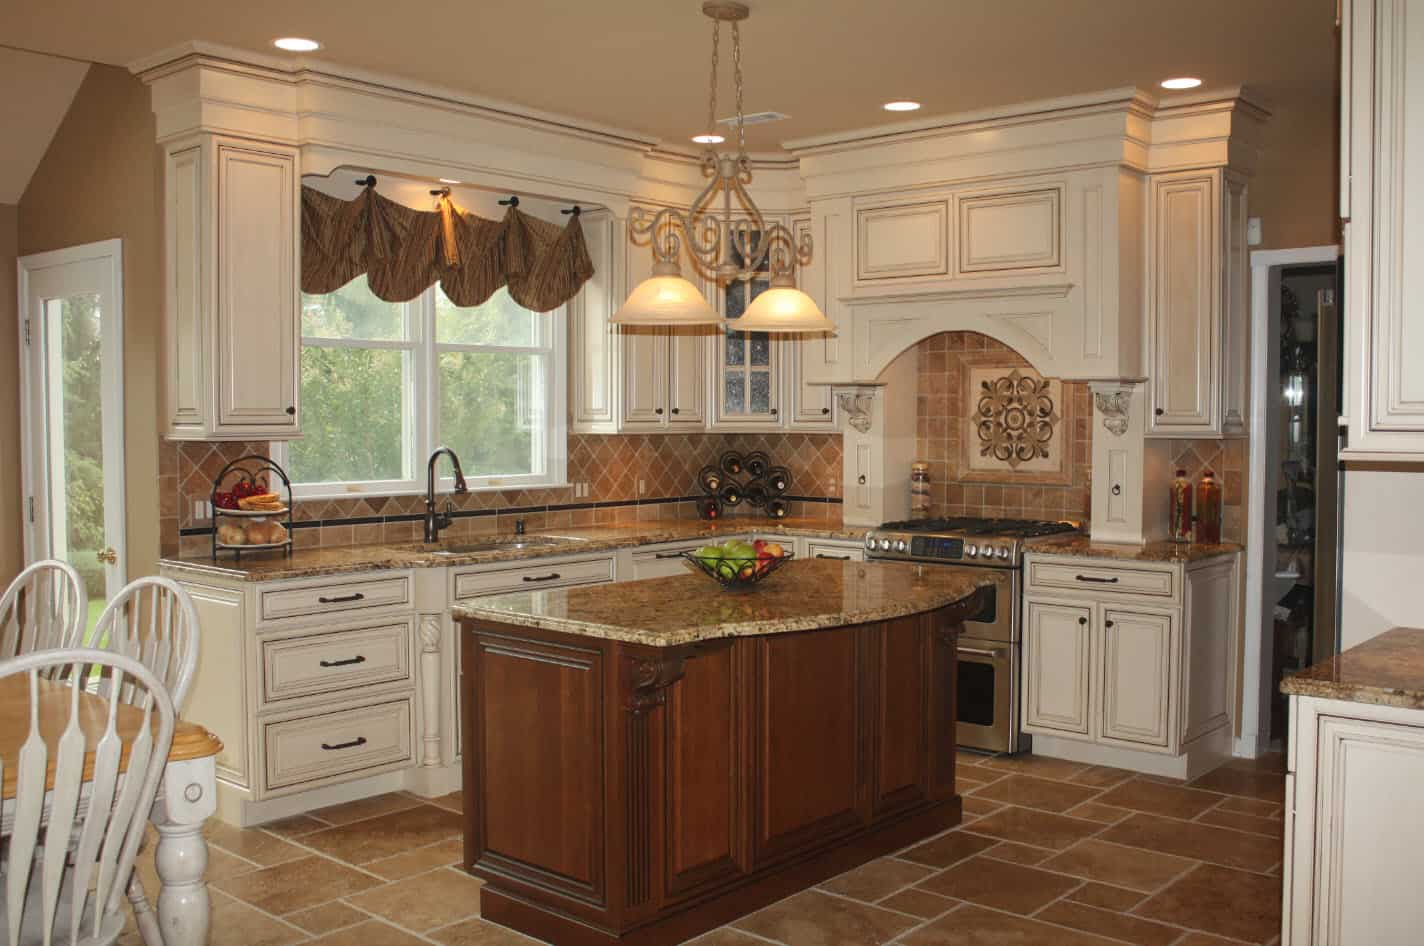 Sycamore kitchens more of newtown pa receives for 5 star kitchen cabinets